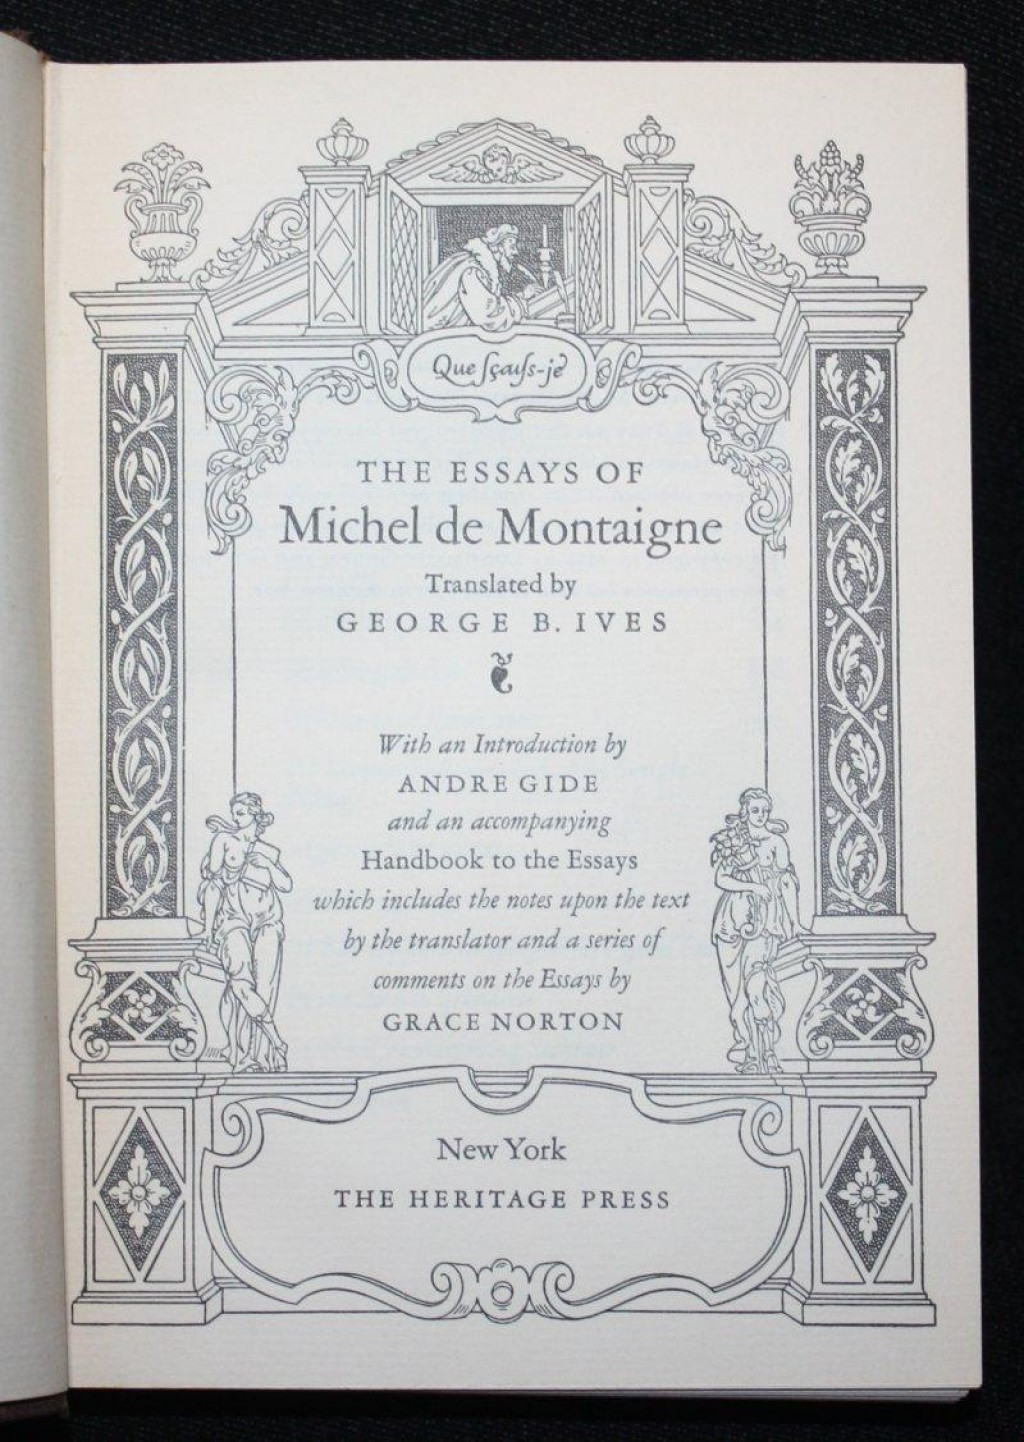 006 Essay Example Montaigne Essays Sparknotes 8892895374 4 Unbelievable Of Cannibals Large